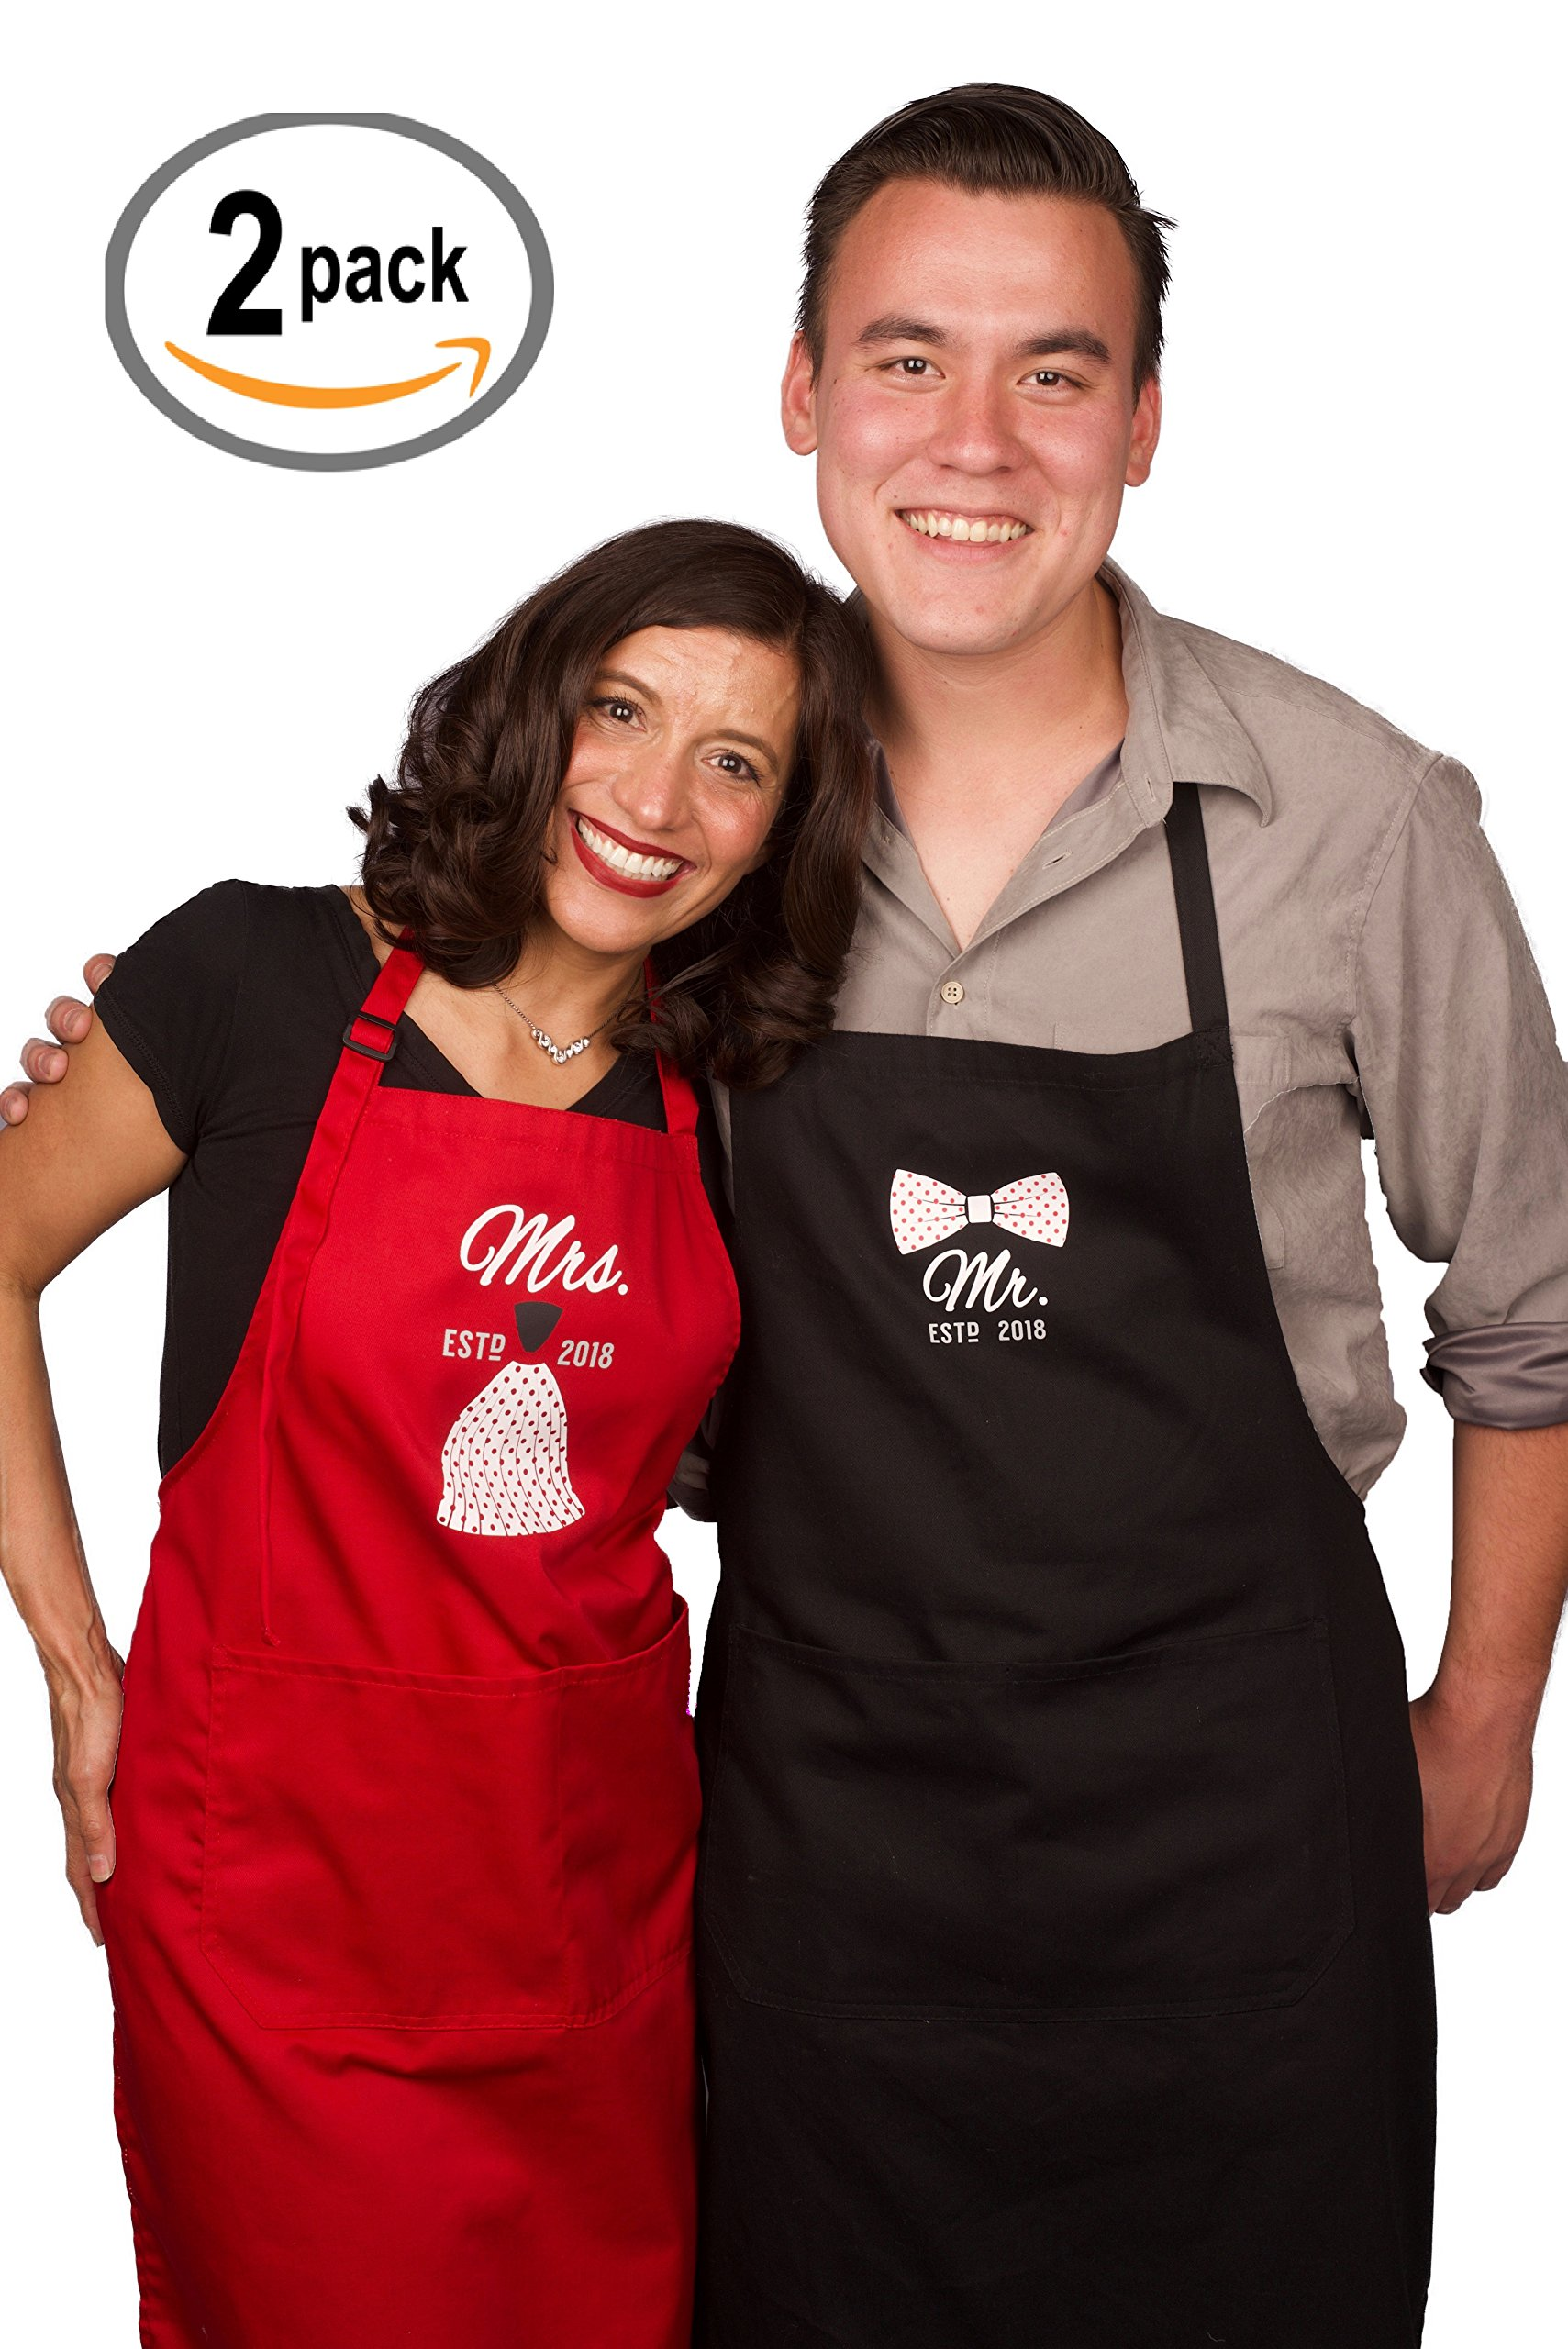 Mr Mrs Anniversary Apron Gift - Year 2018 - Man and Women 2 Piece Set - Perfect for engagements, weddings, happy anniversaries, bridal showers, valentines day by 2MU by 2MU